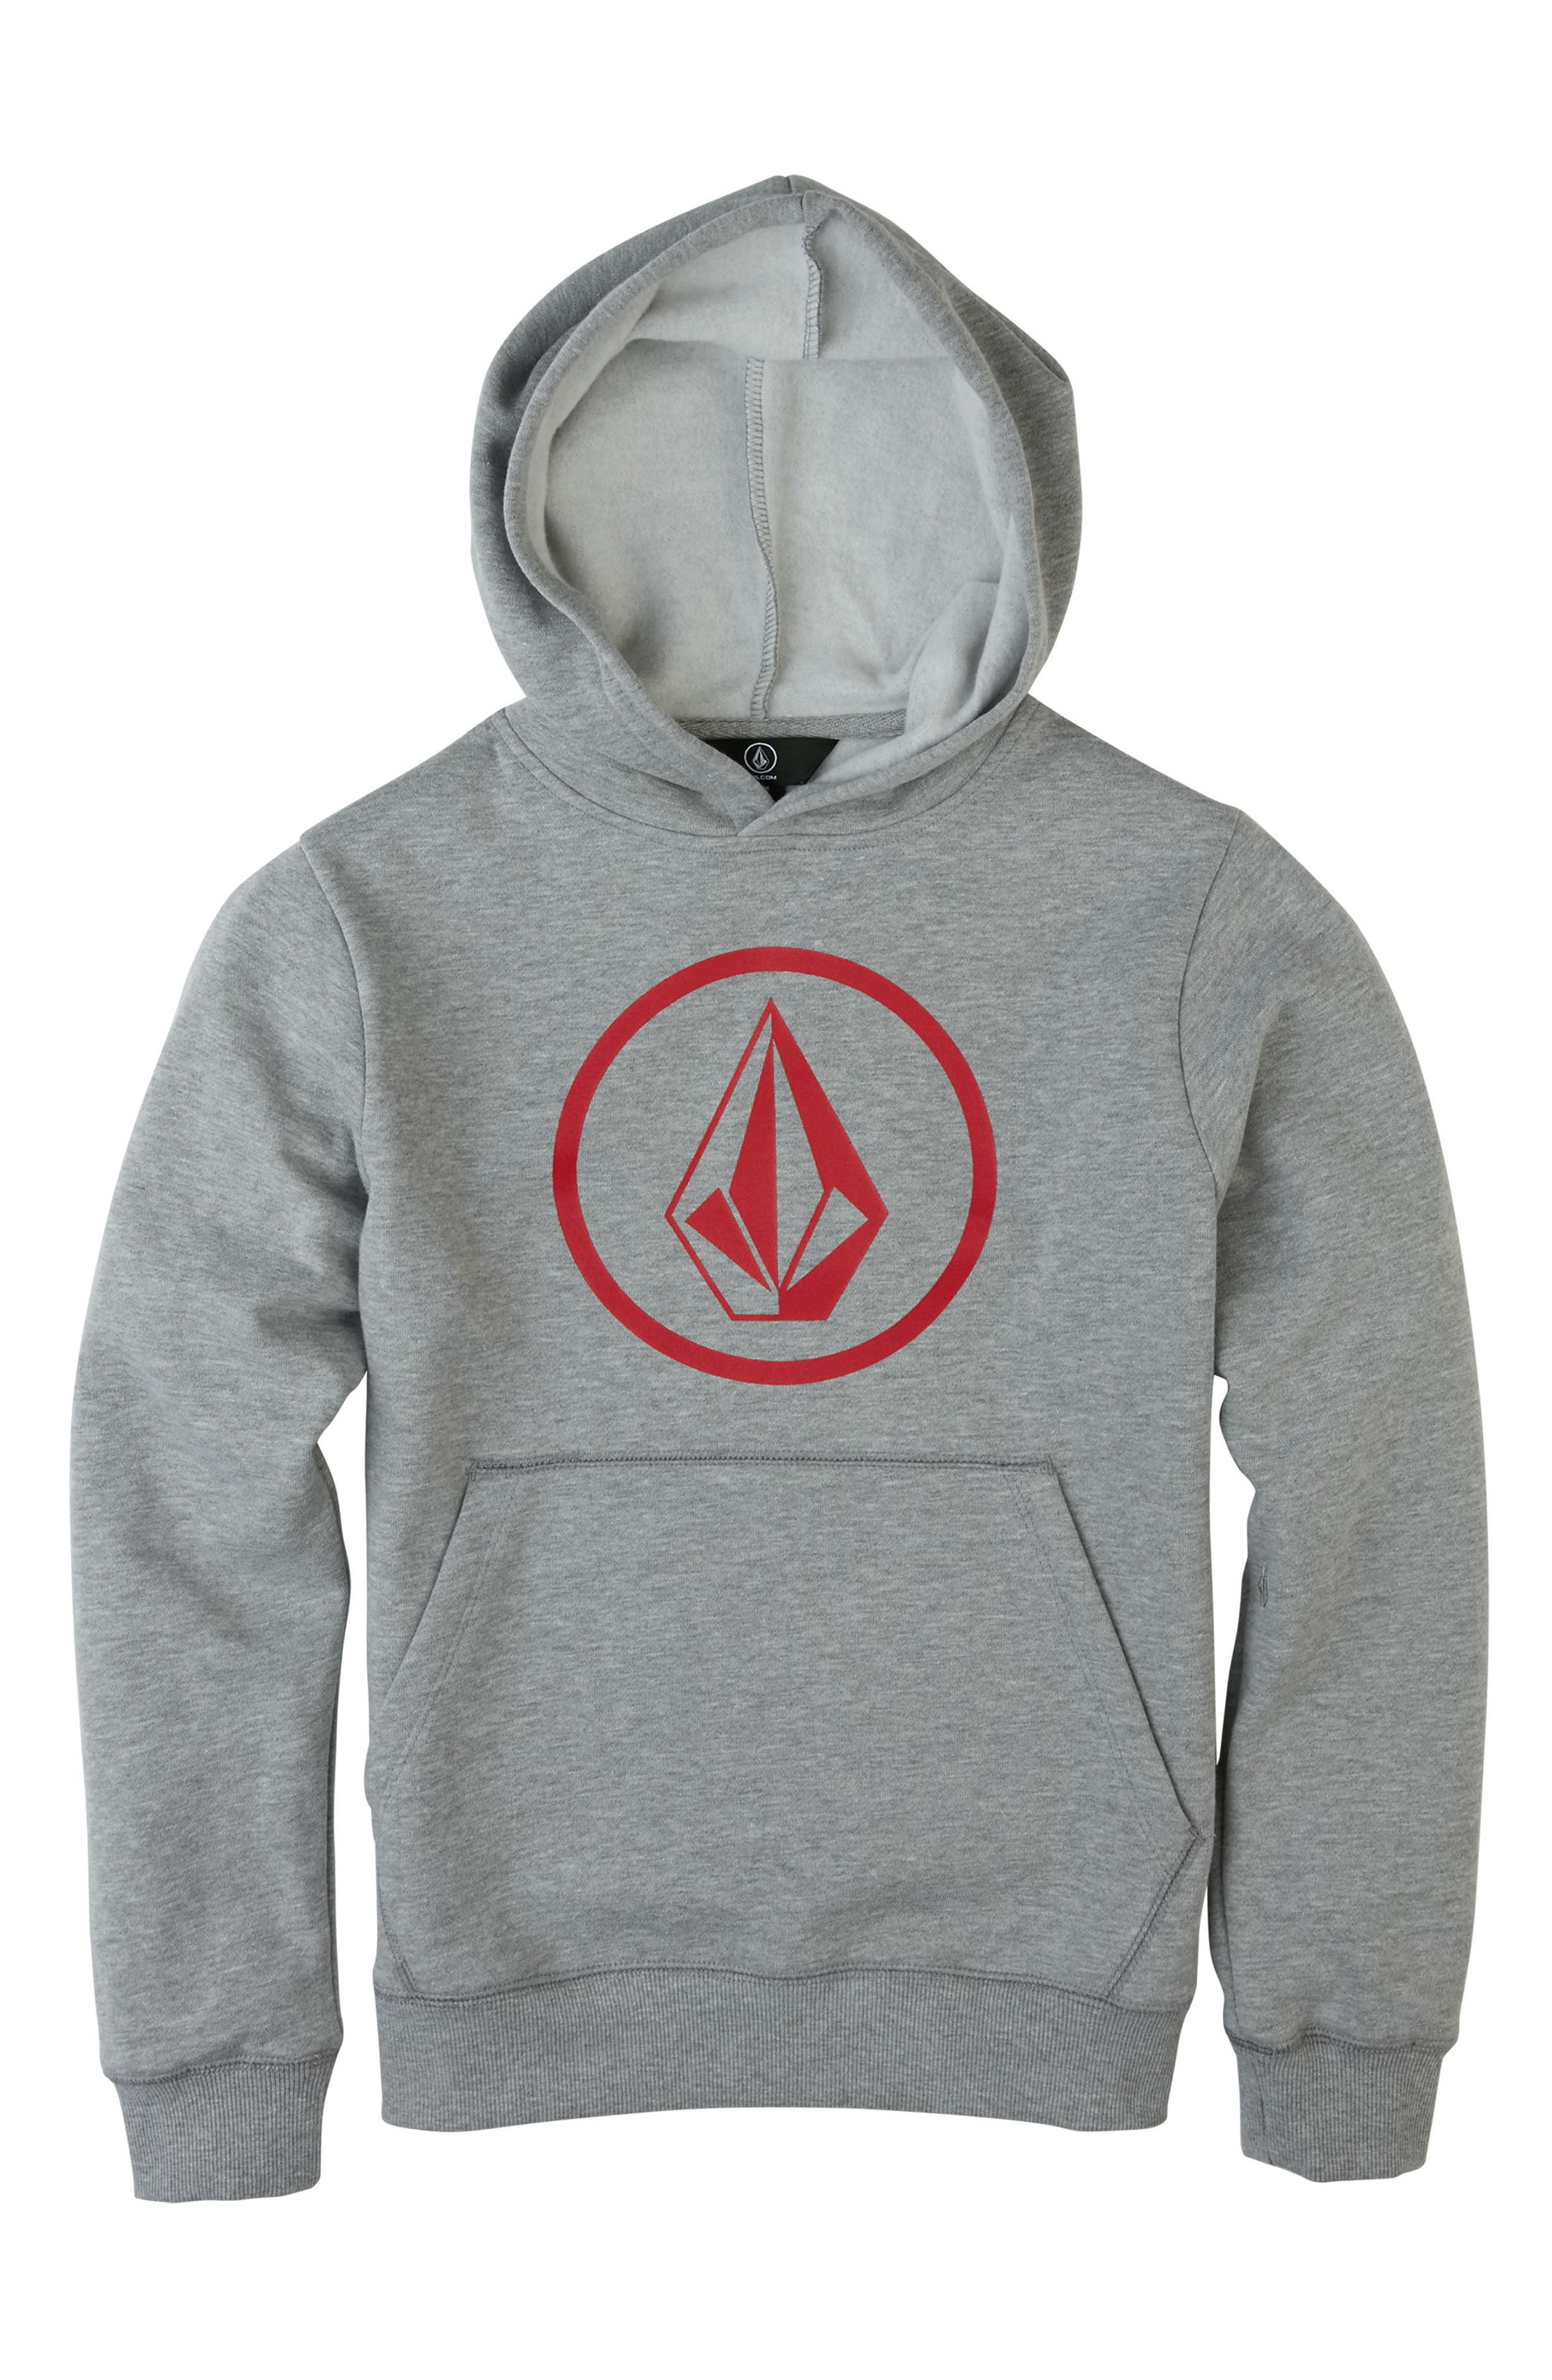 Alternate Image 1 Selected - Volcom Stone Fleece Hoodie (Big Boys)